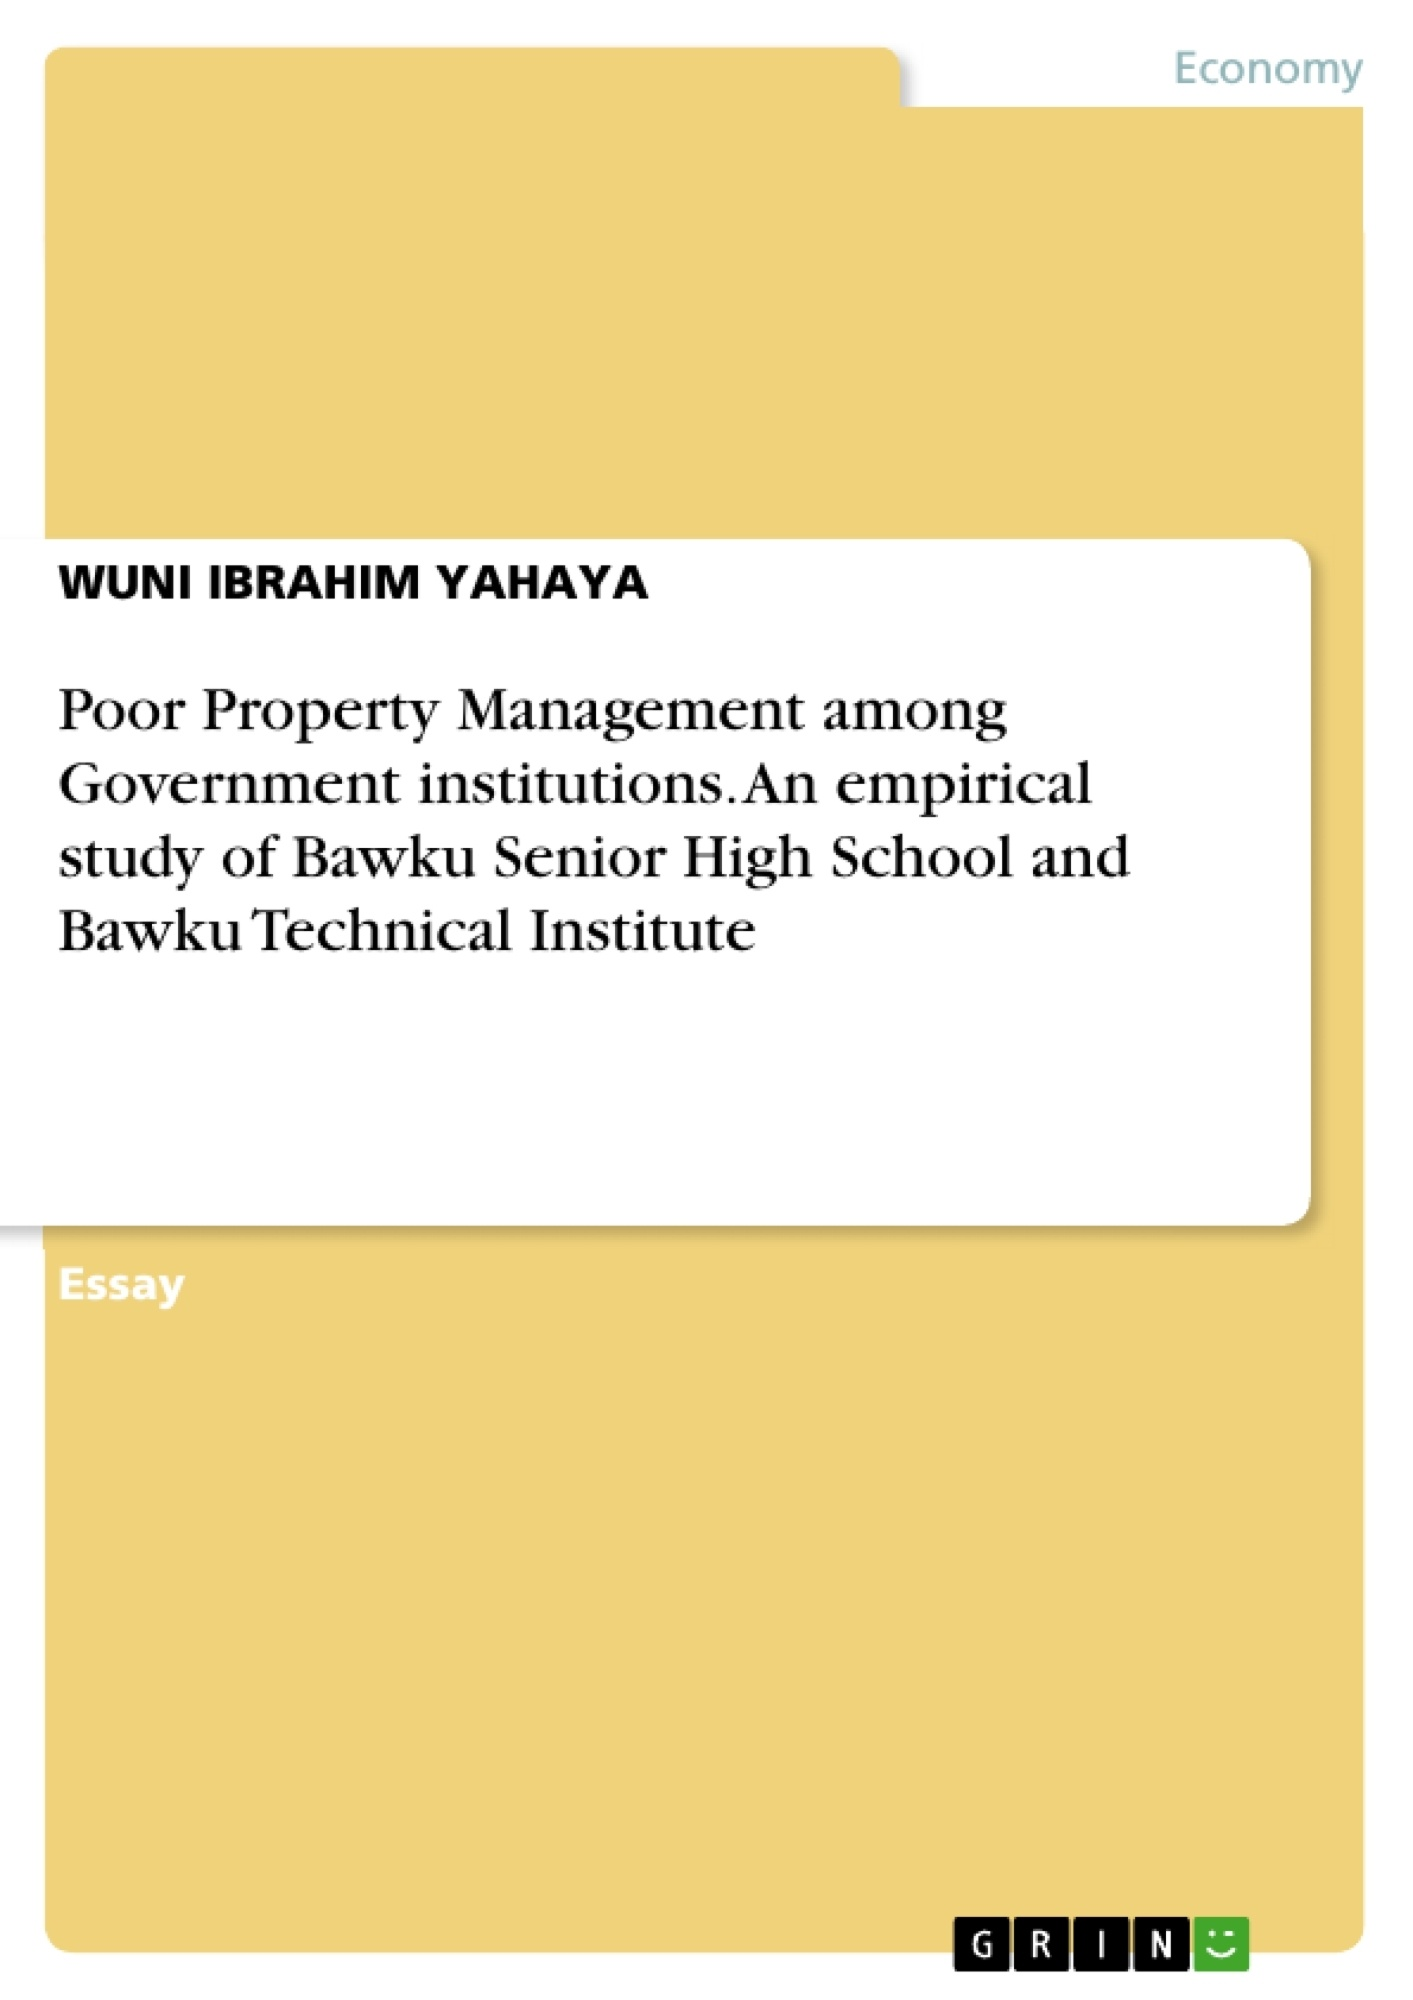 Title: Poor Property Management among Government institutions. An empirical study of Bawku Senior High School and Bawku Technical Institute